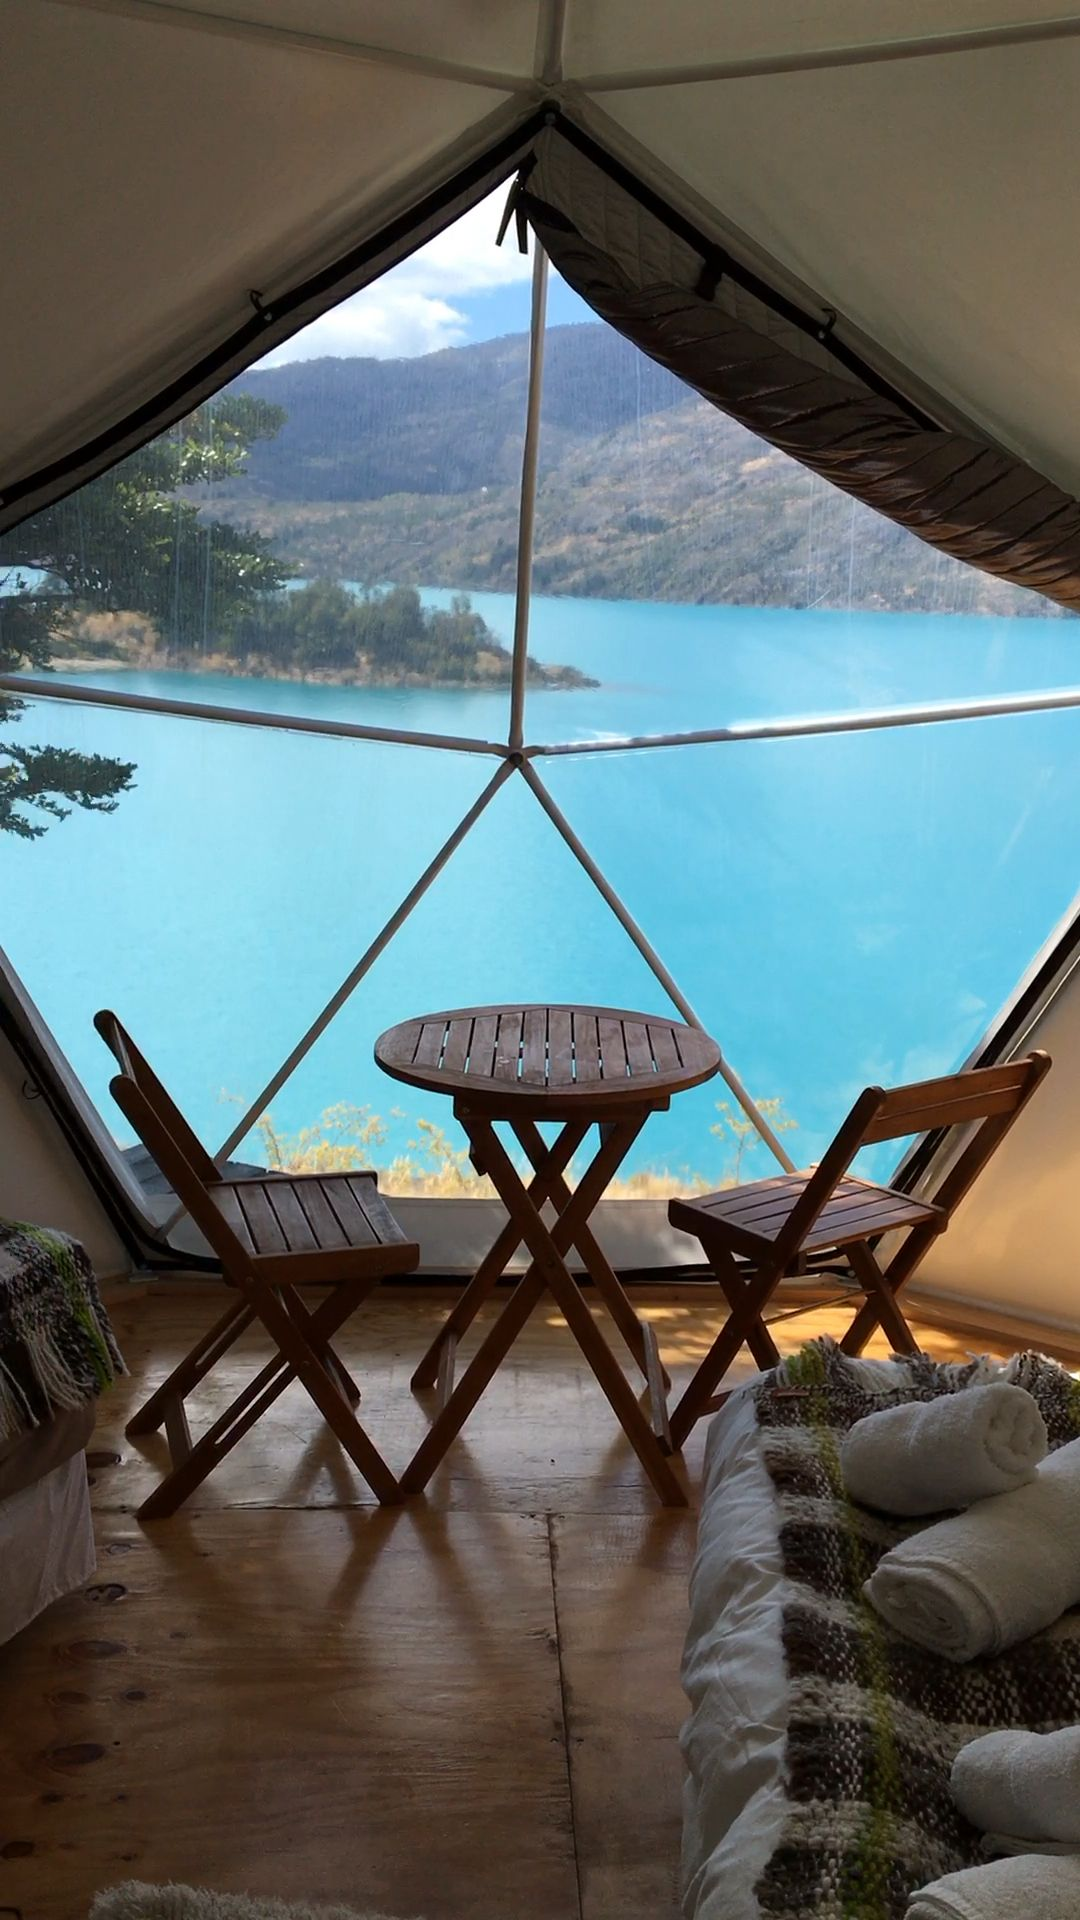 Pared Sur Eco Camp in Patagonia